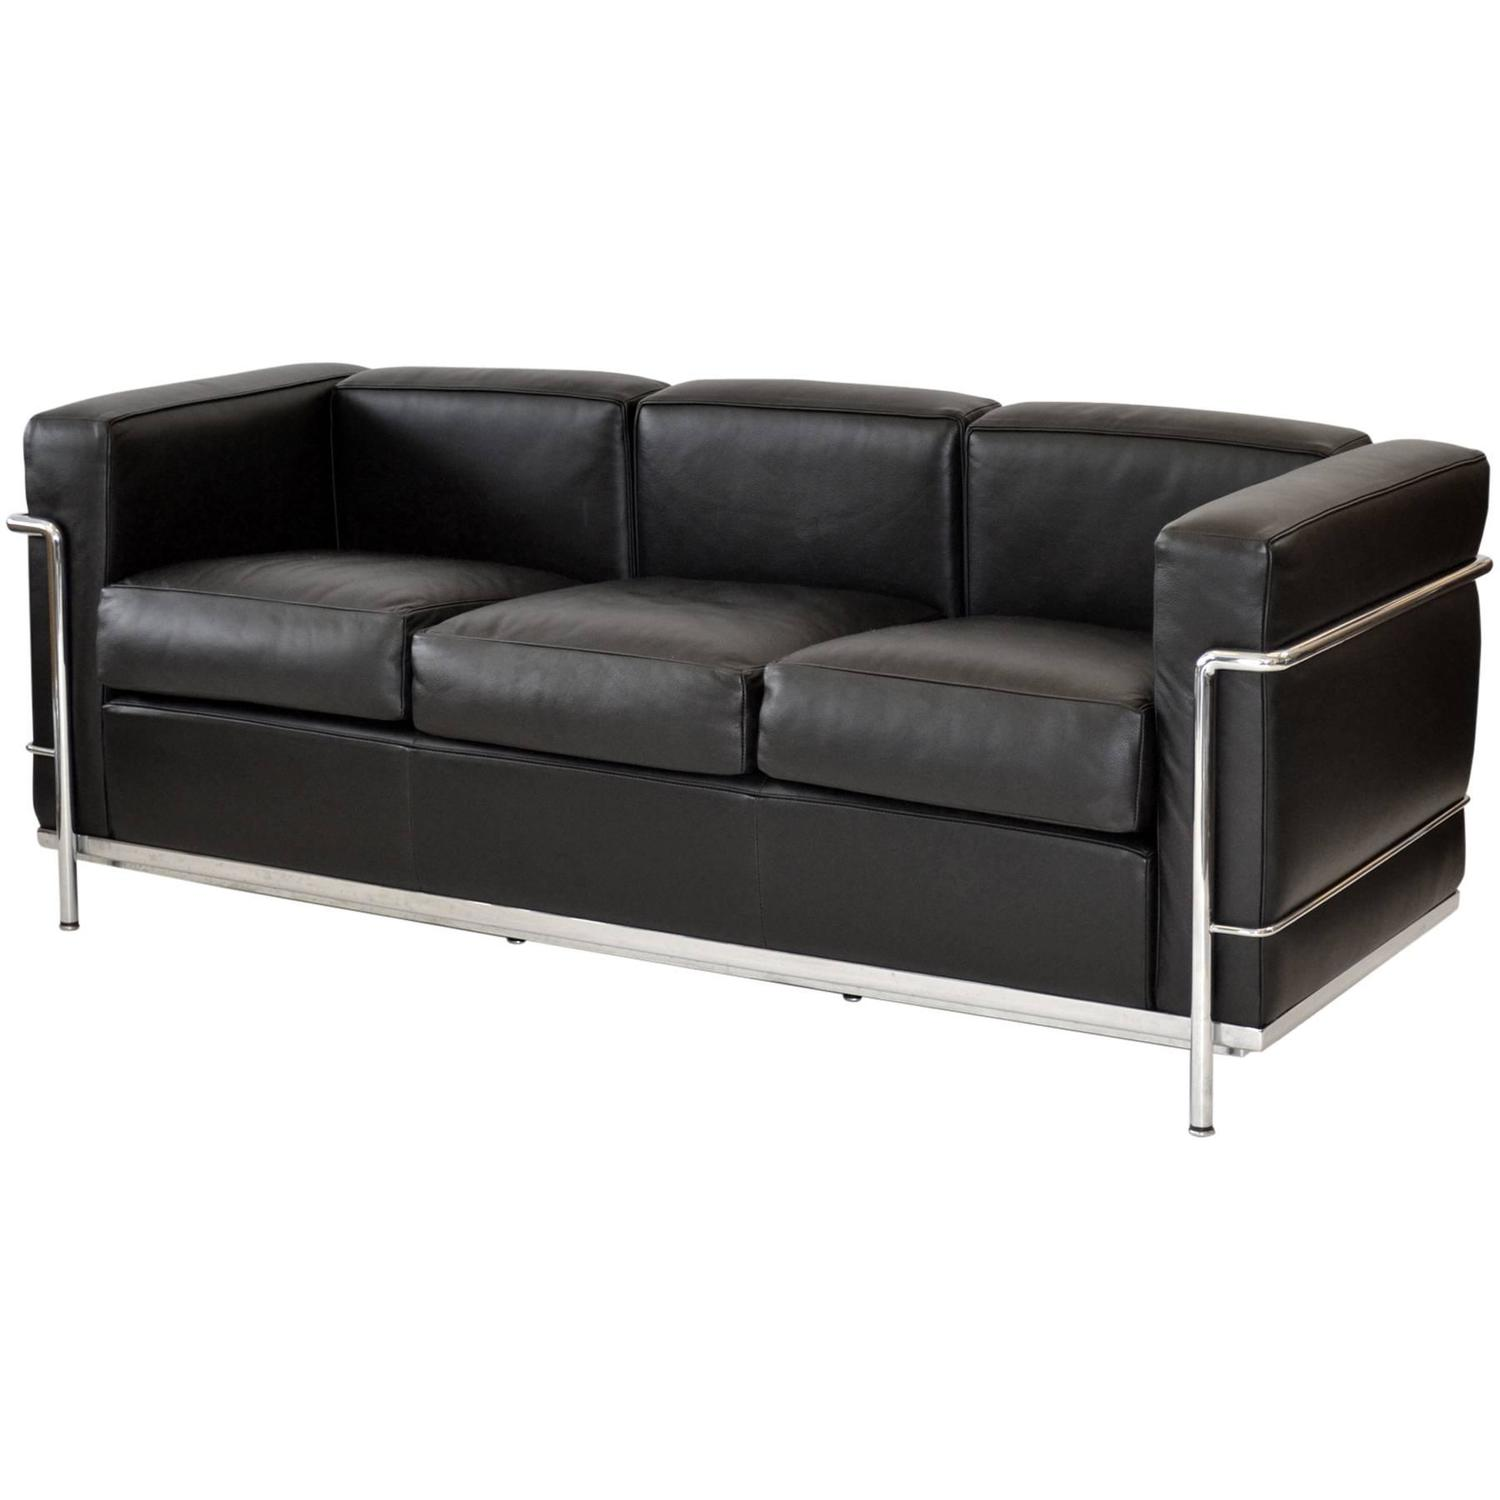 Lc2 three seat leather sofa by le corbusier for cassina at for Le corbusier sofa nachbau